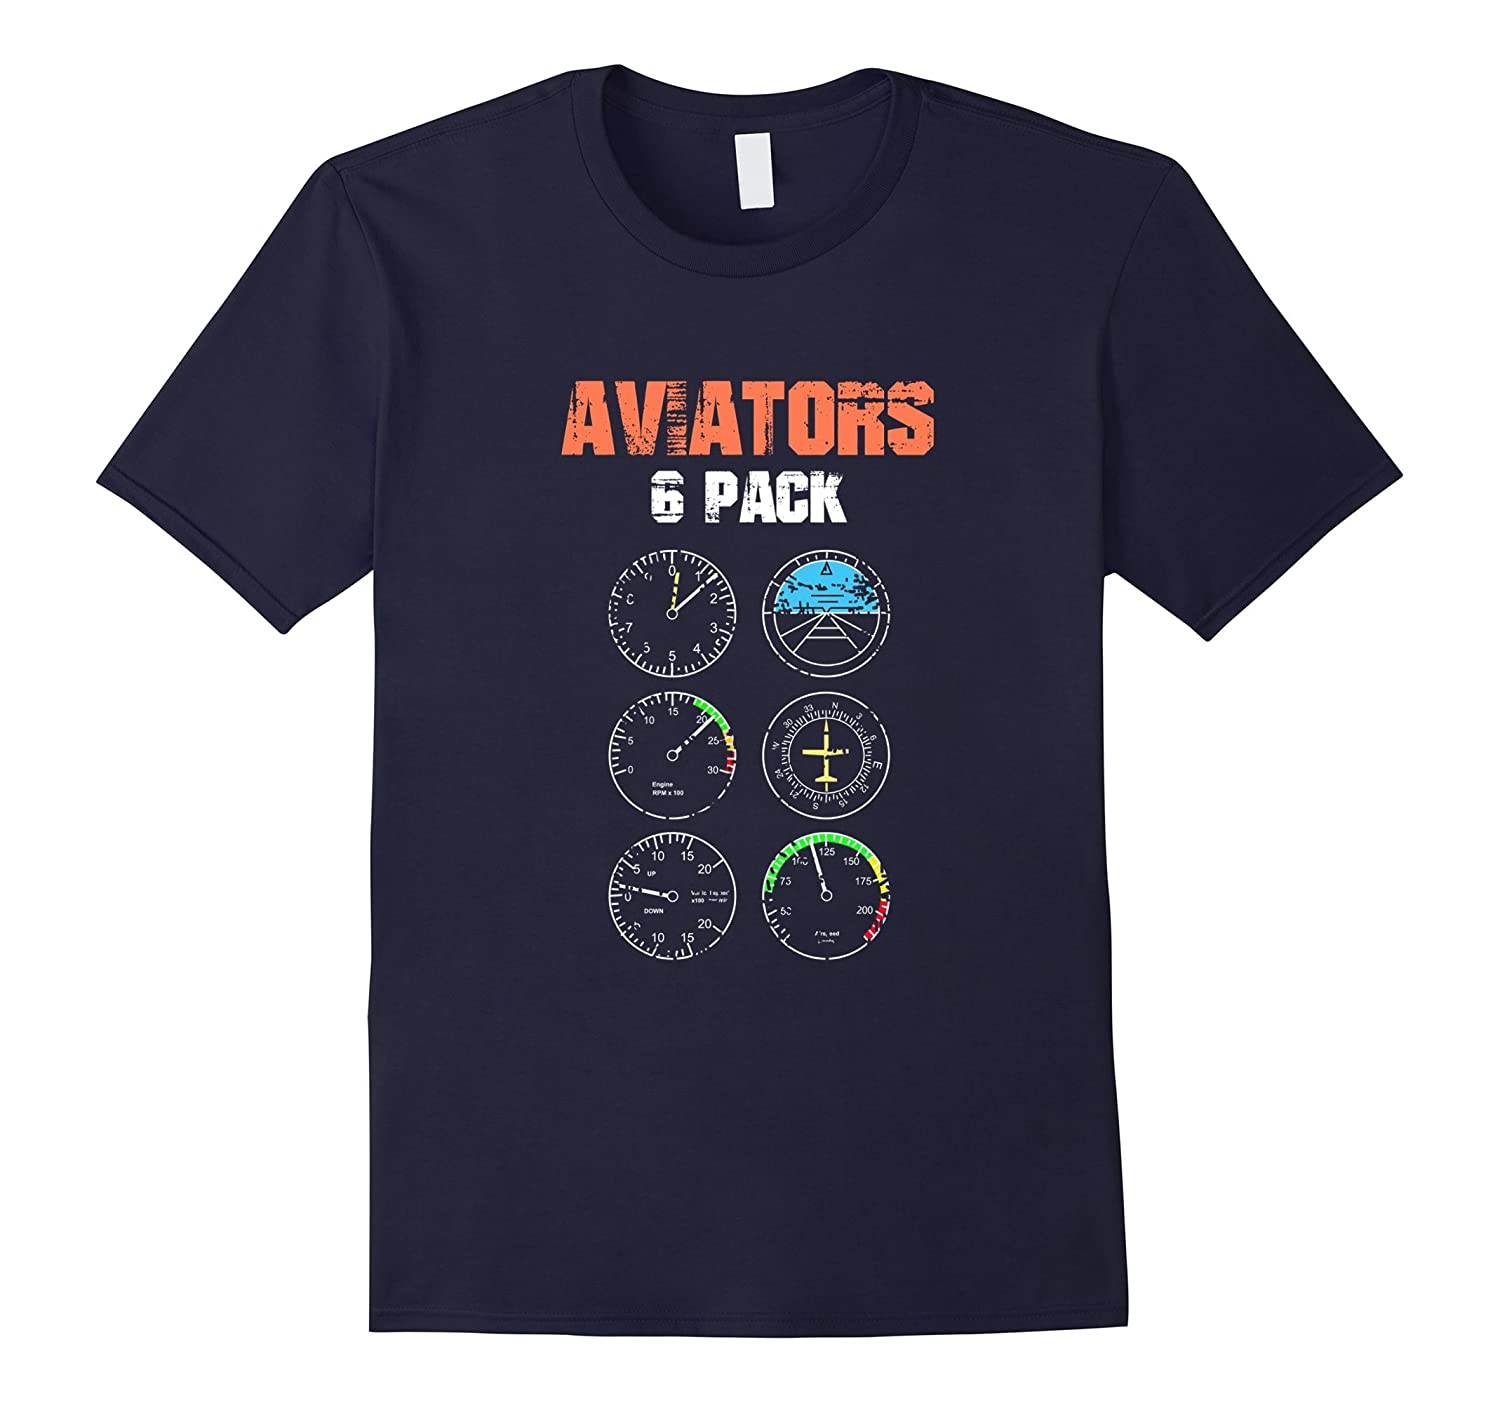 Aviators 6 Pack with Instruments T-Shirt-TH